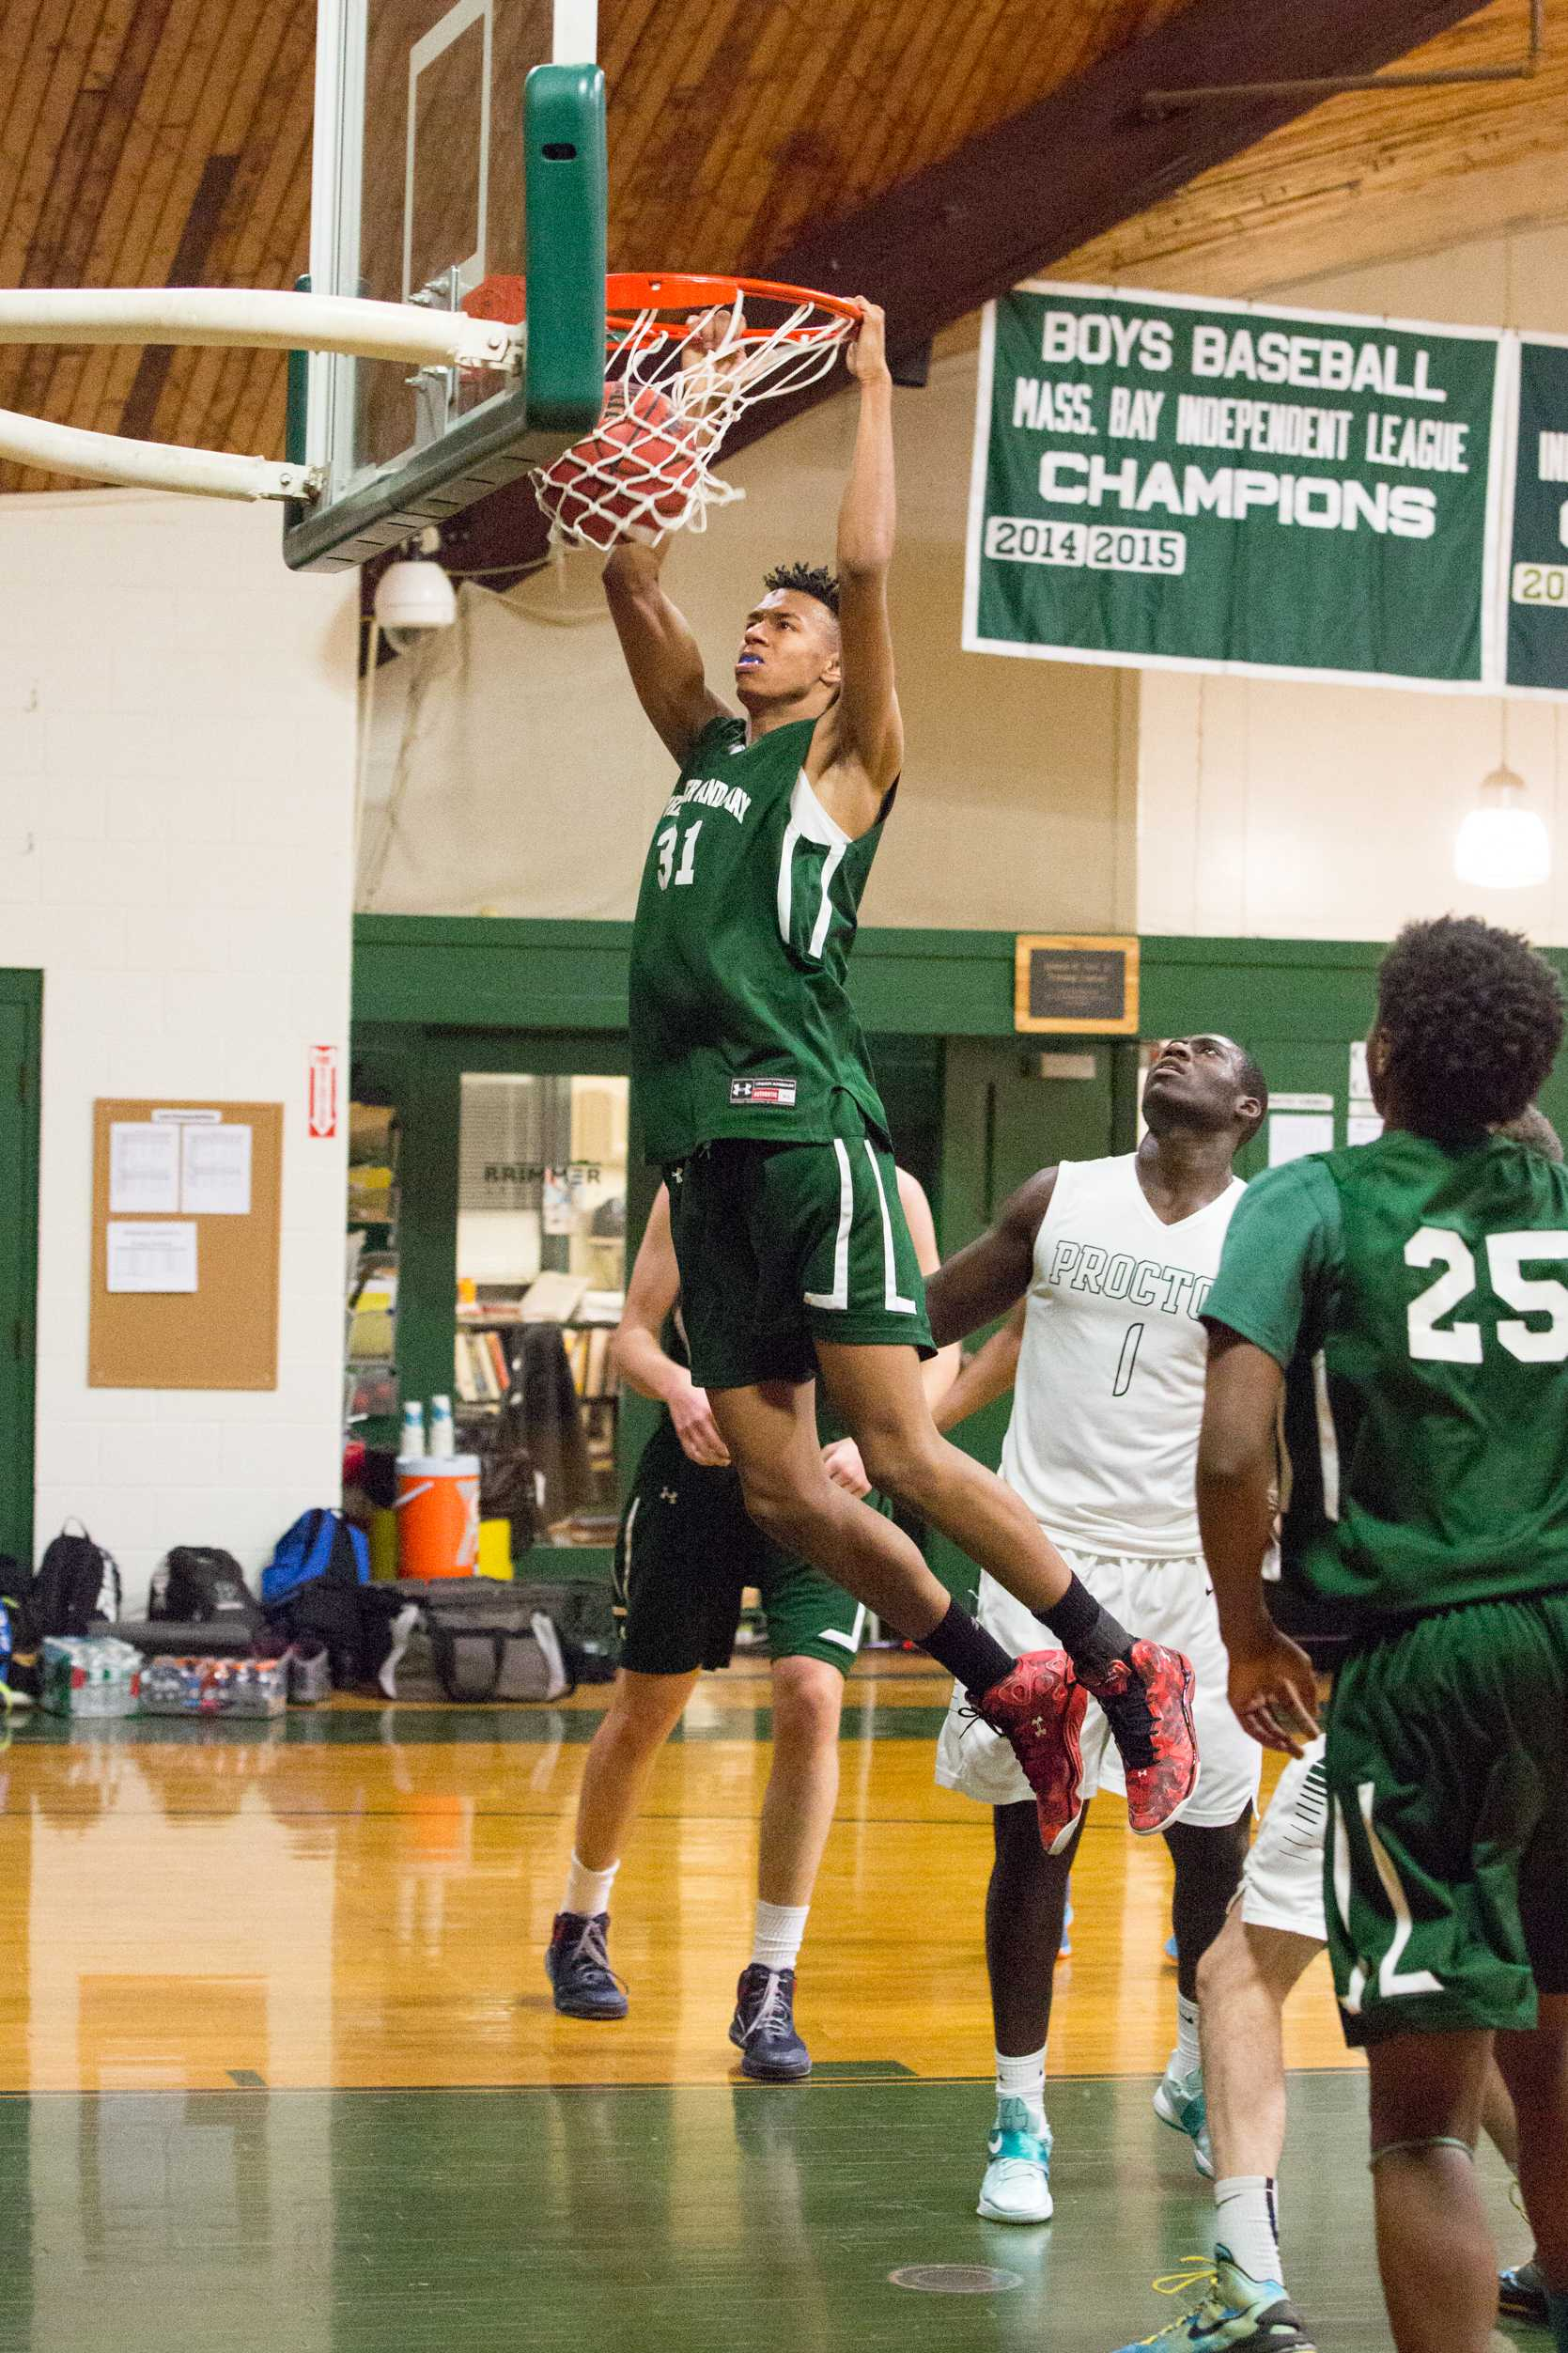 Photo by David Barron: Isaiah Fontaine '16 makes it look easy.